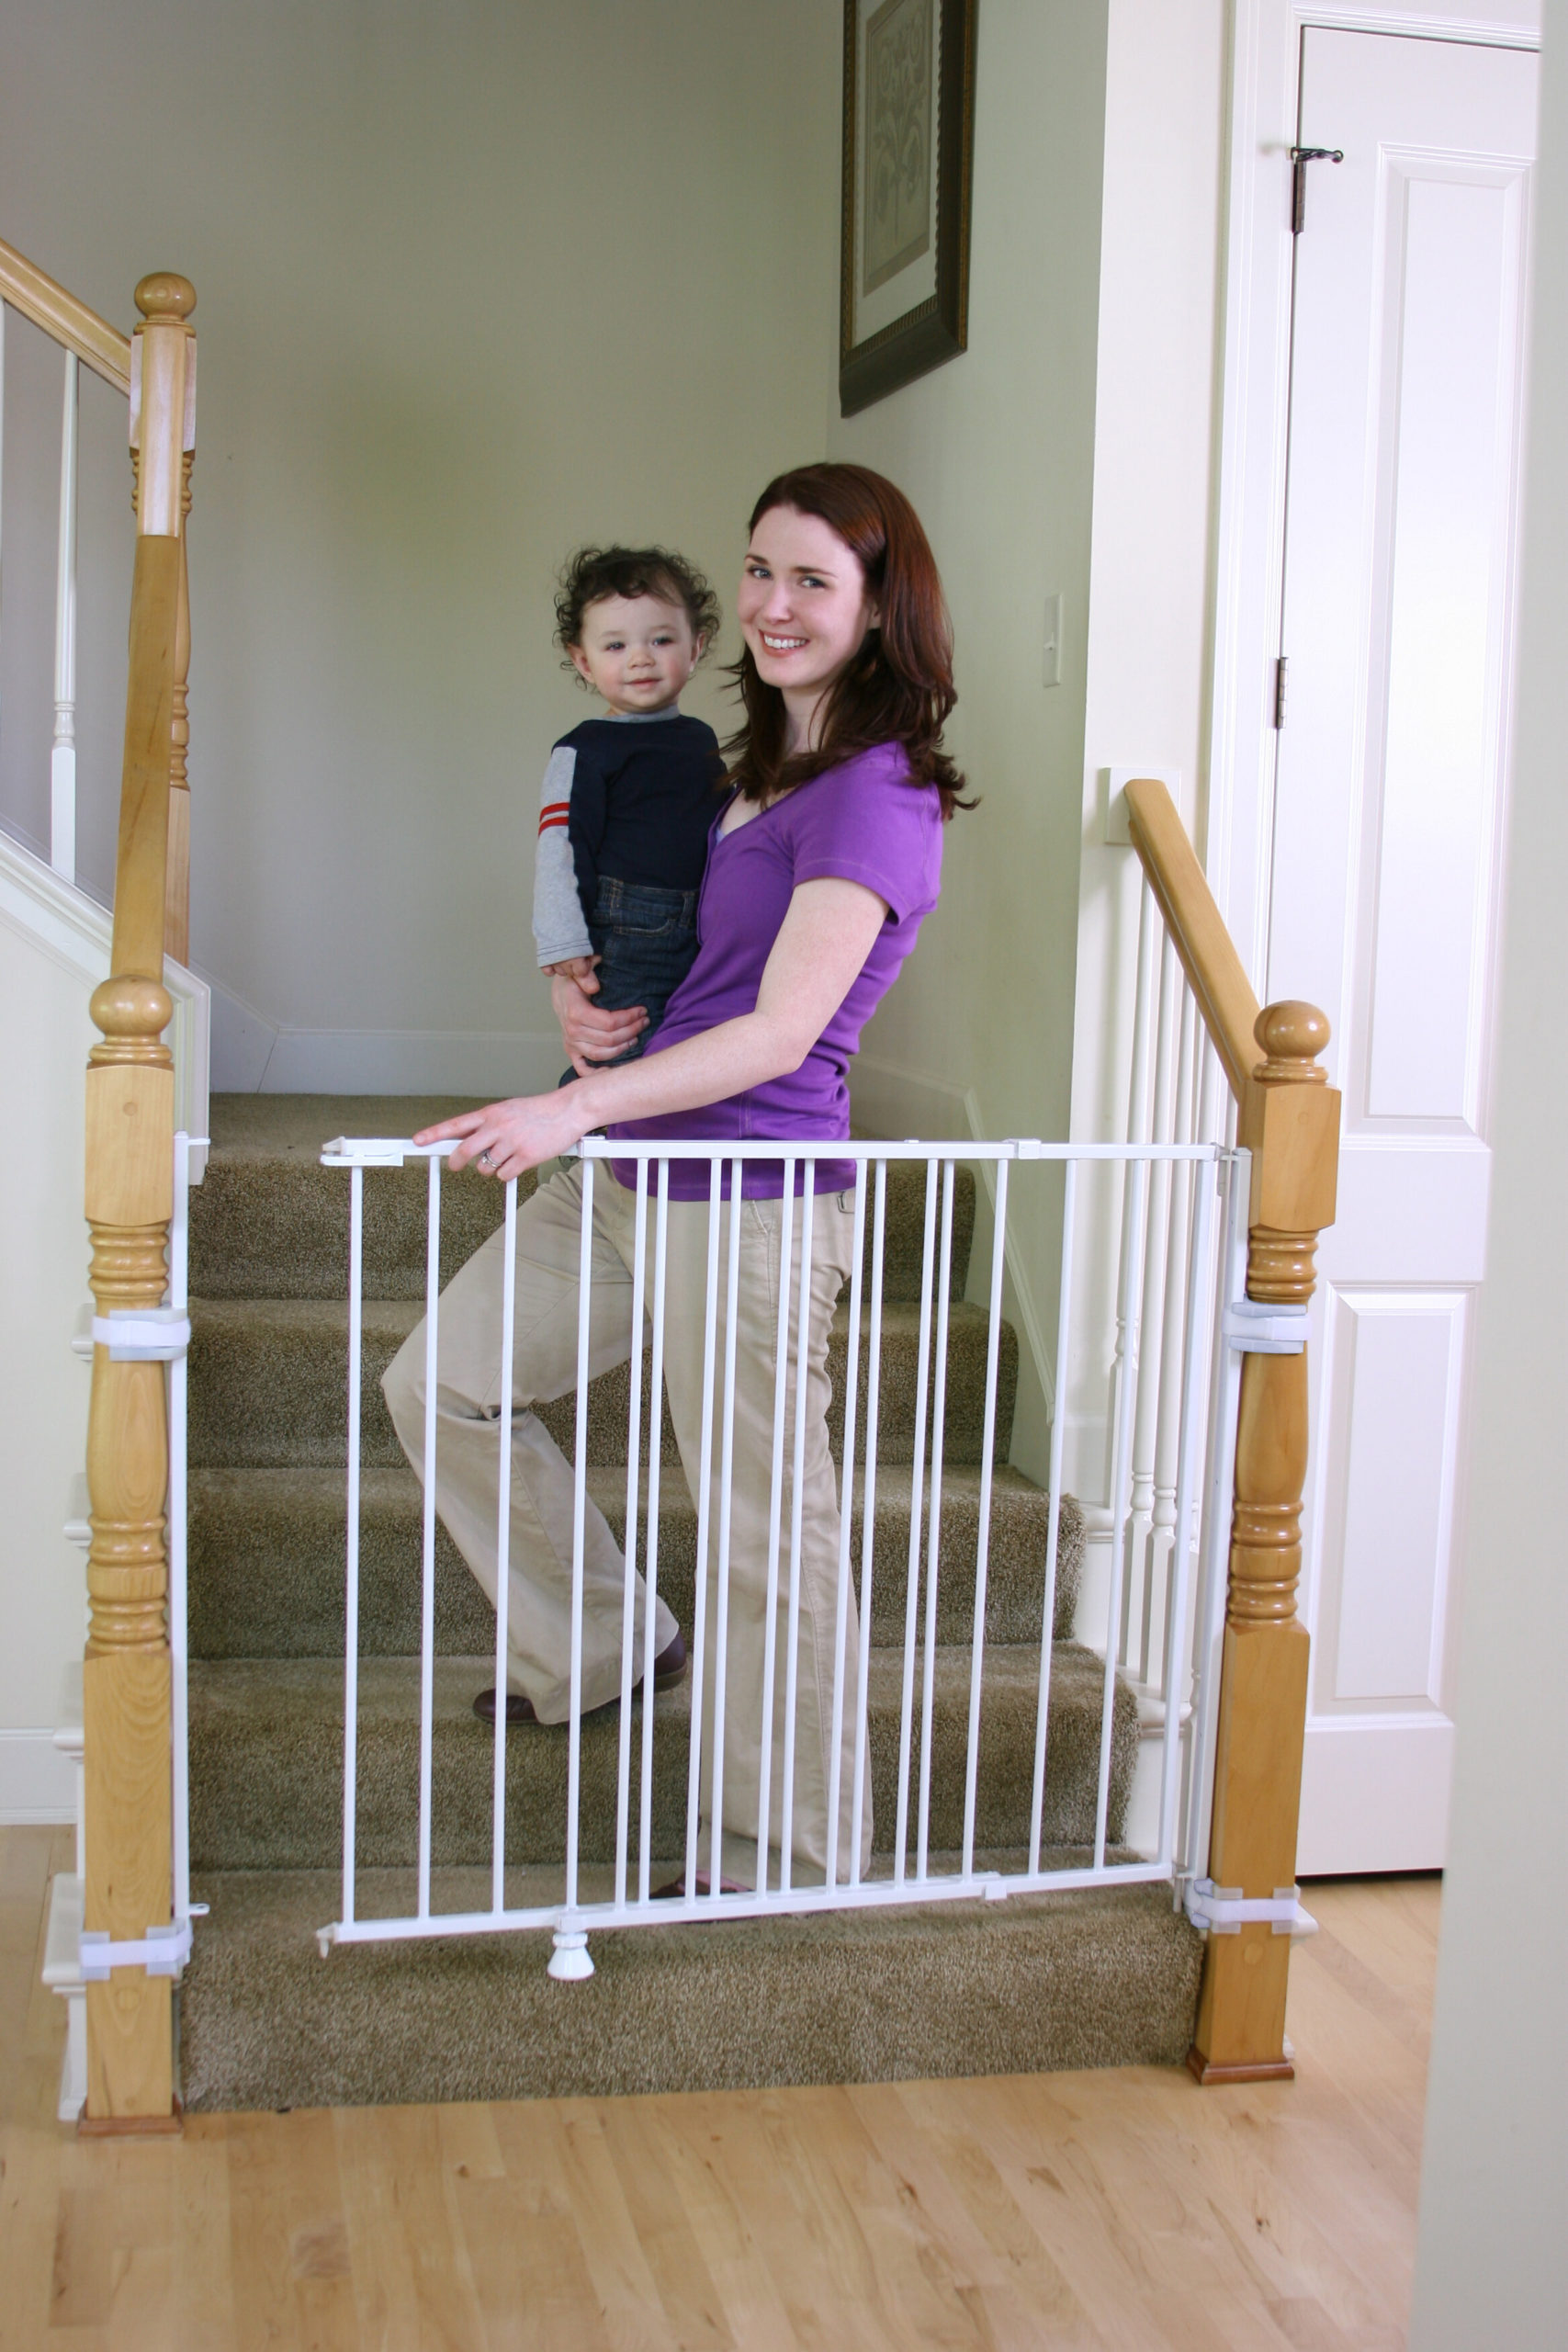 How to Choose the Best Baby Gates For Stairs